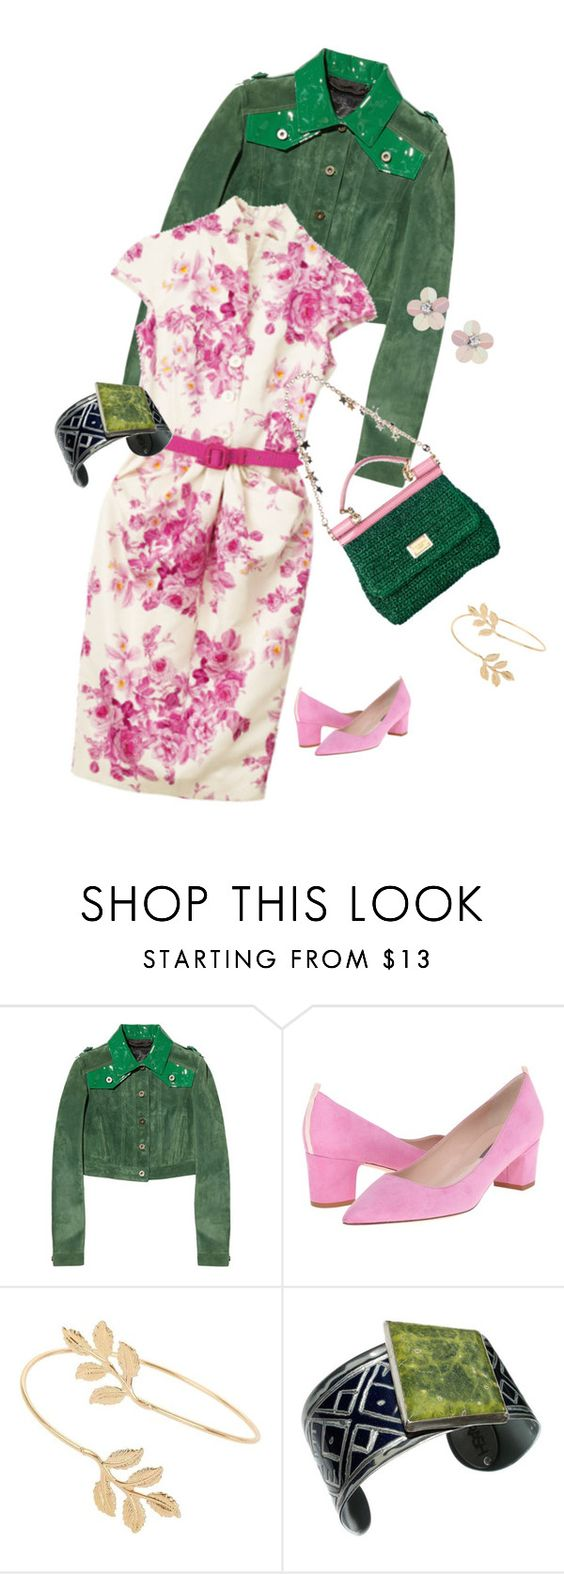 """""""Untitled #645"""" by clothes-wise ❤ liked on Polyvore featuring Burberry, Christian Dior, Dolce&Gabbana, SJP and Miss Selfridge"""